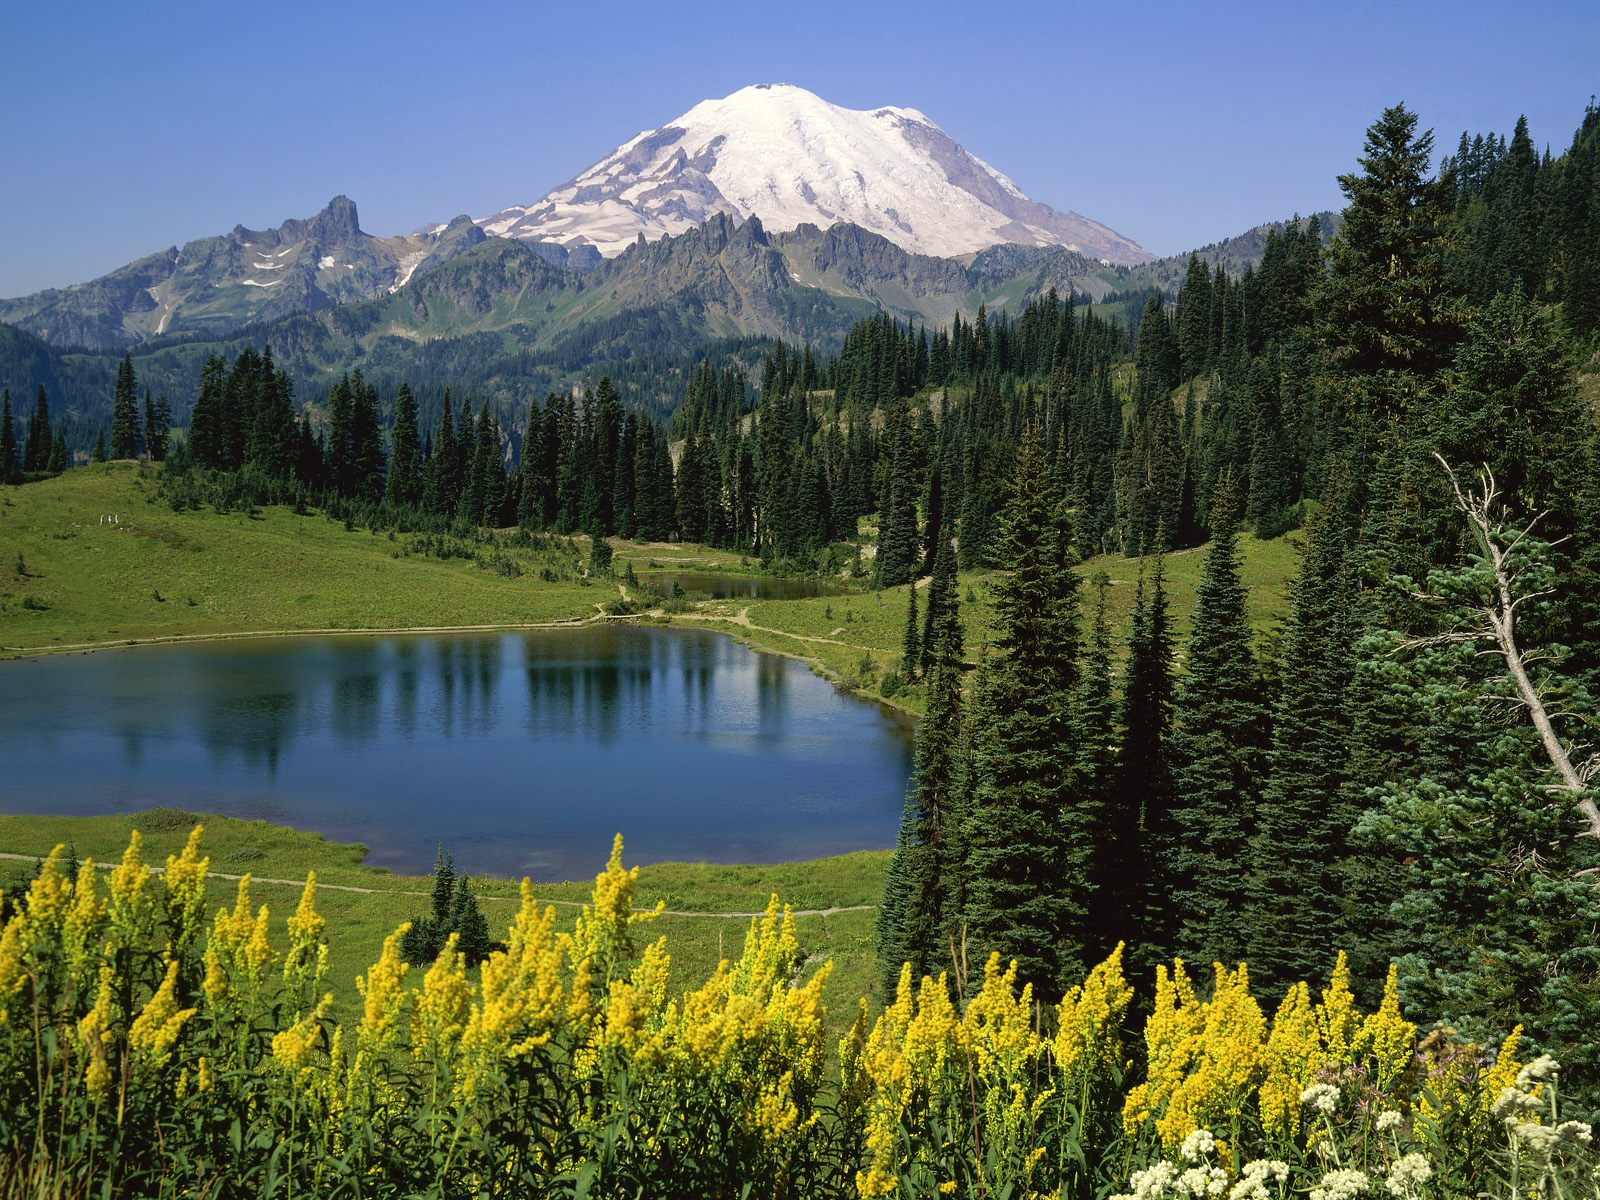 Natural Beauty Mount Rainier National Park Washington